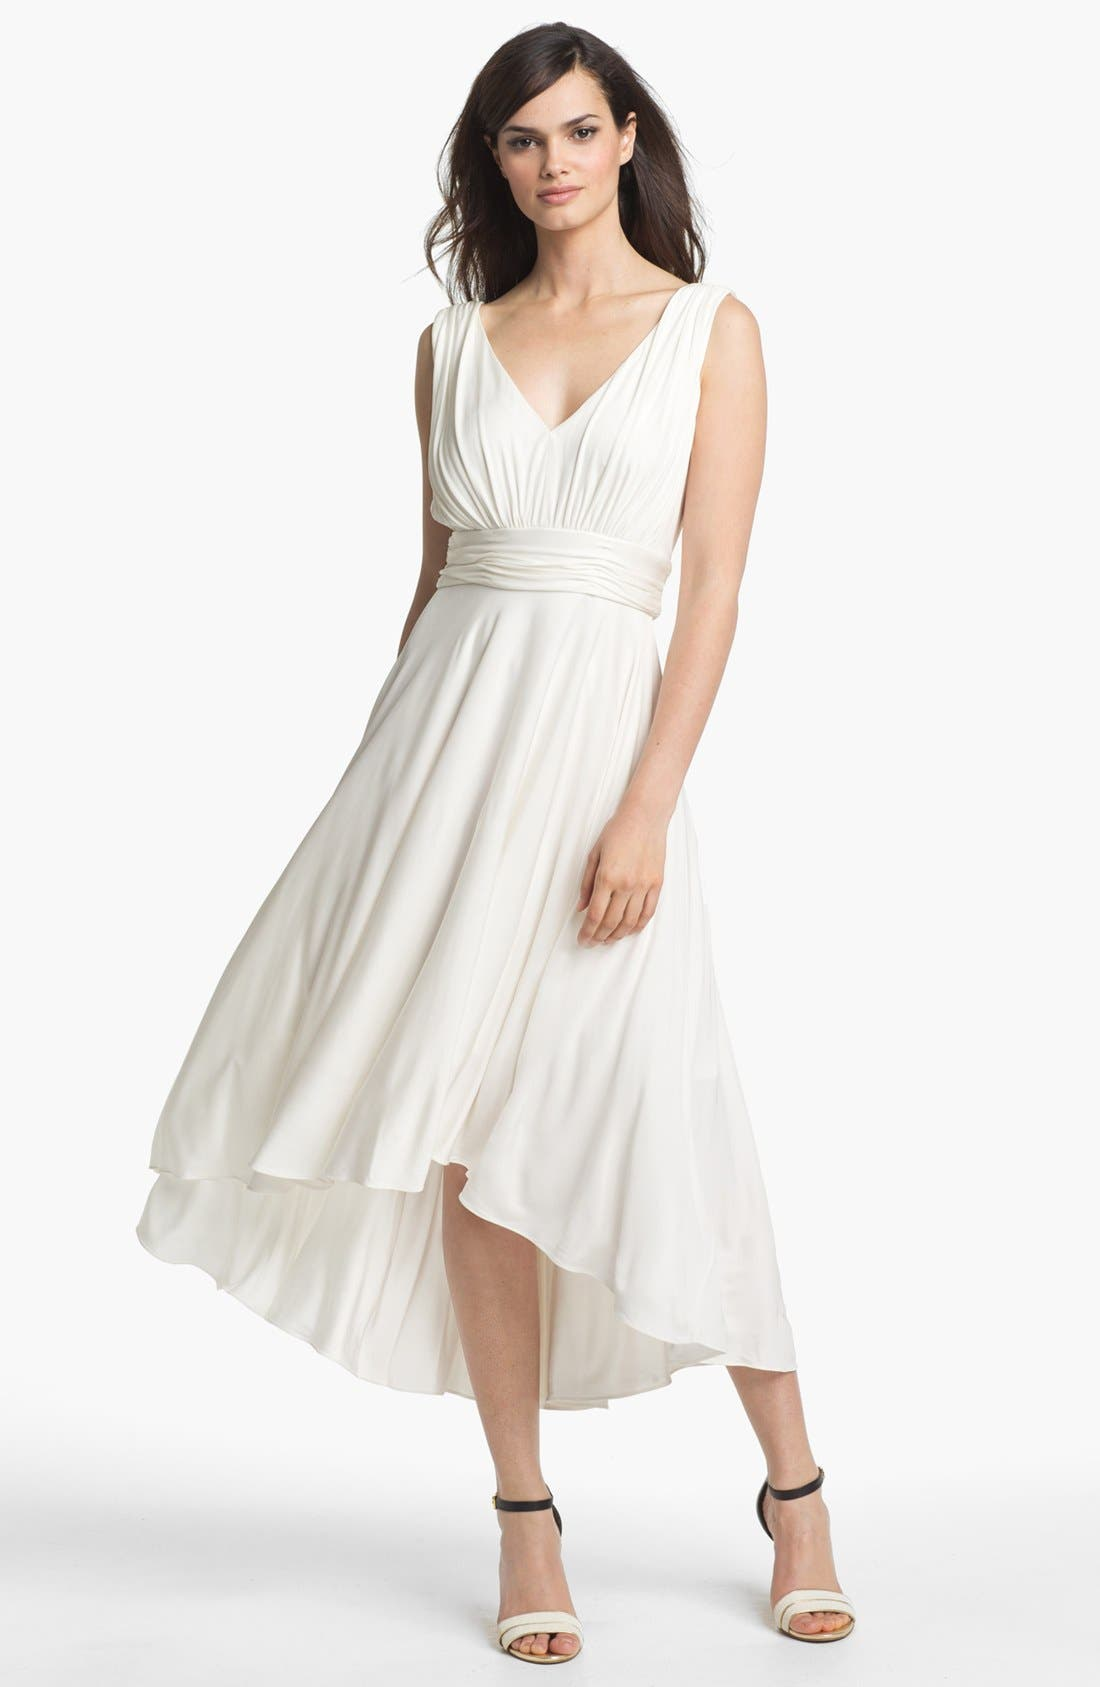 Main Image - Suzi Chin for Maggy Boutique Sleeveless Fit & Flare Dress